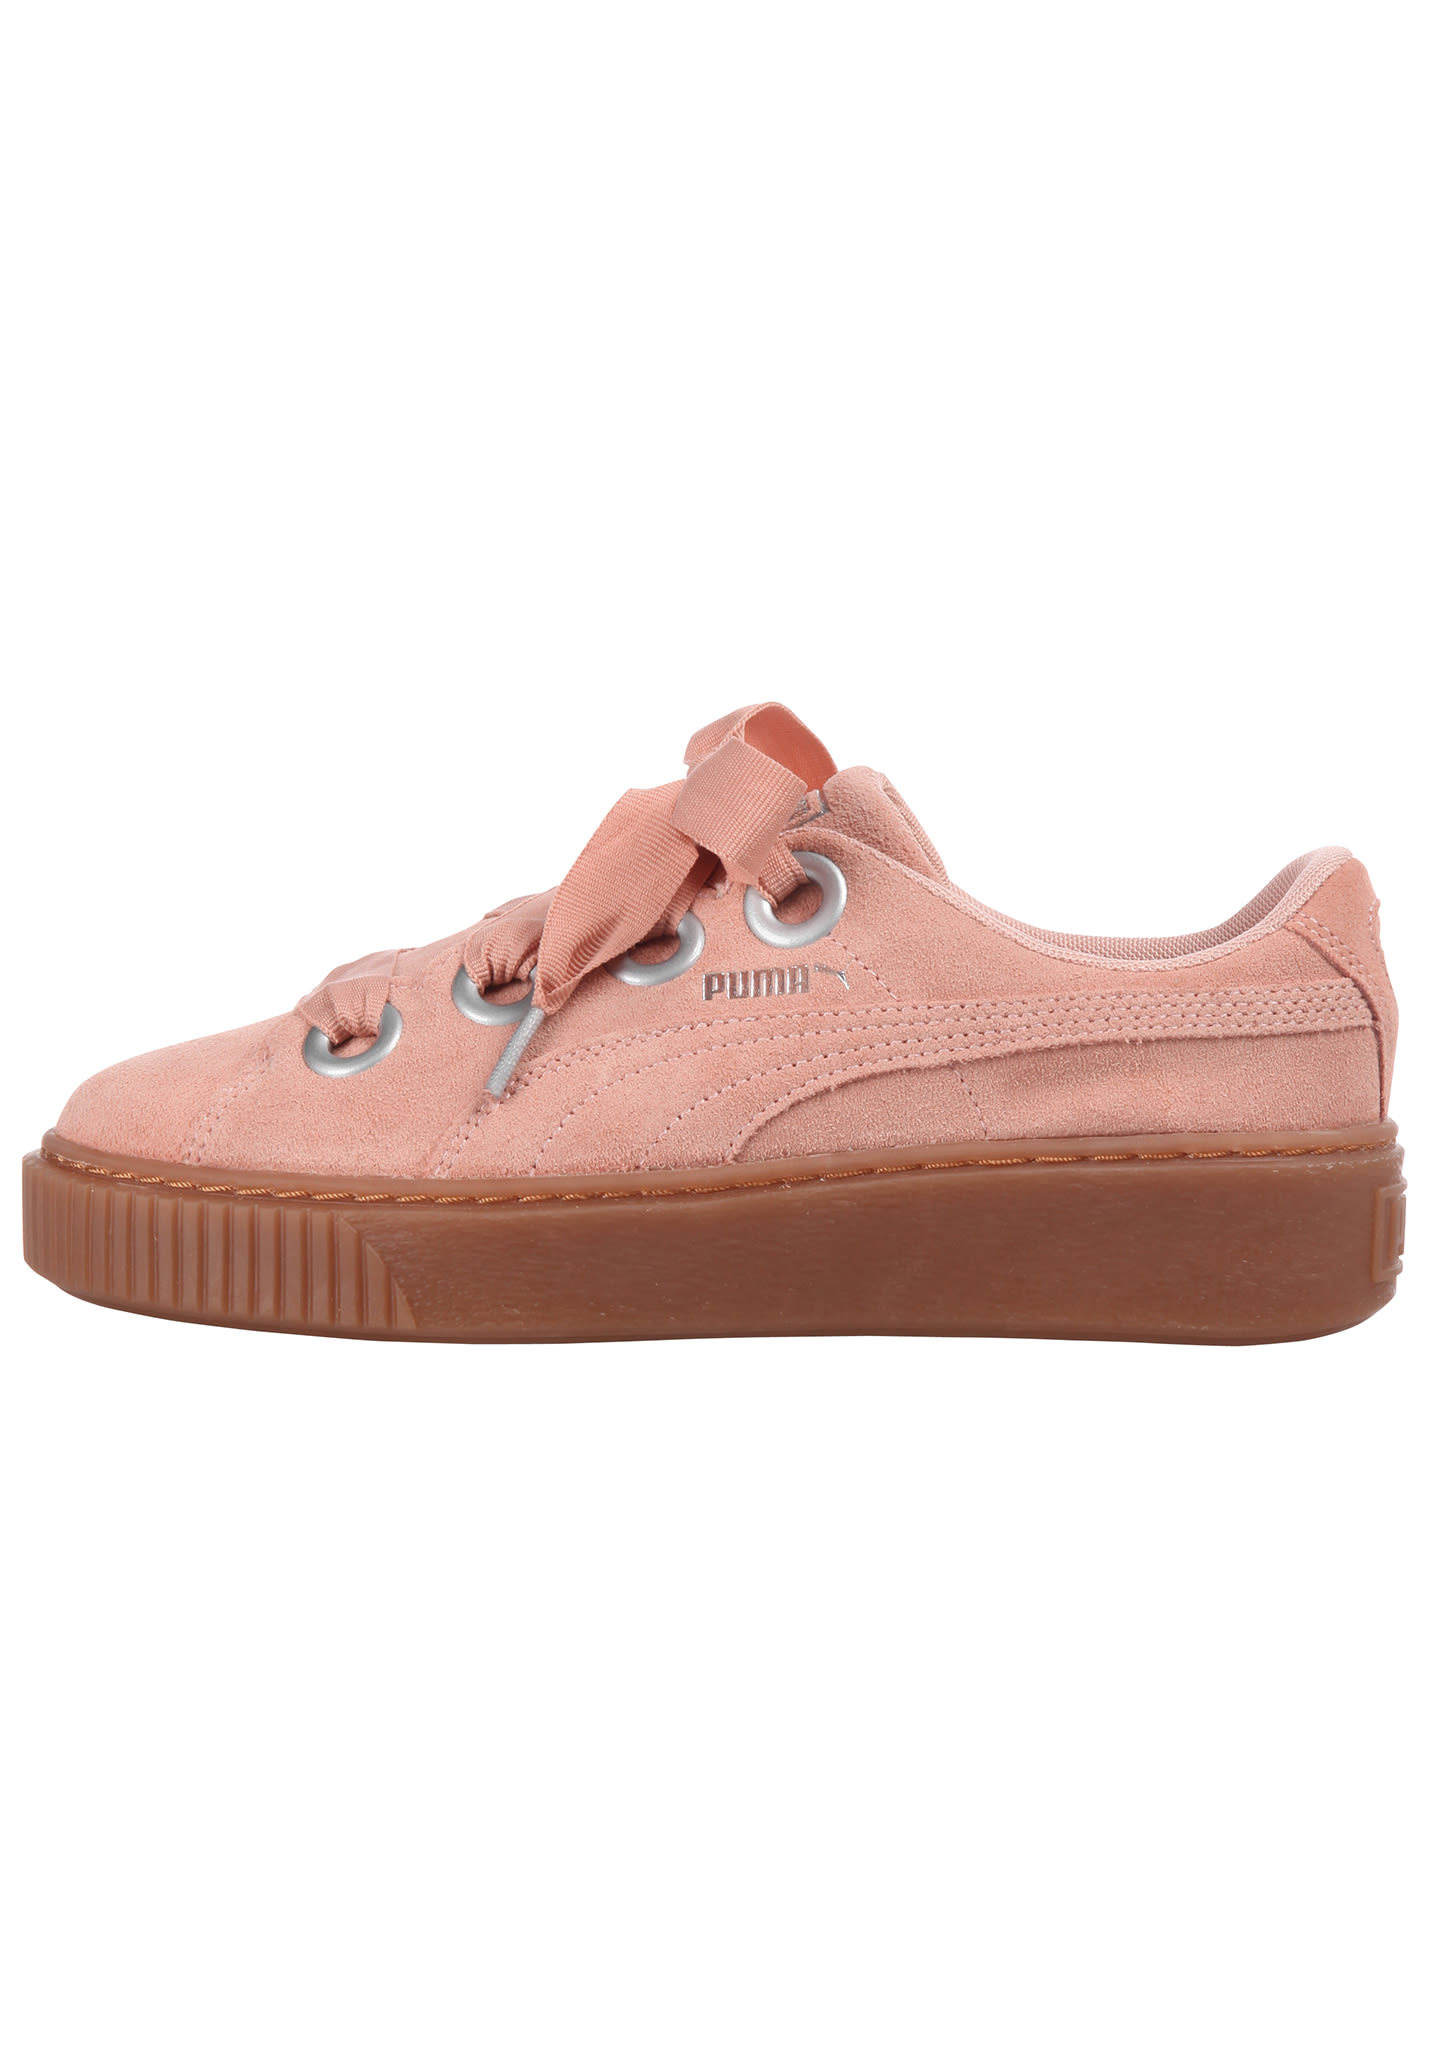 Puma Women Sneakers Platform Pink Suede For Kiss SVzpUMq